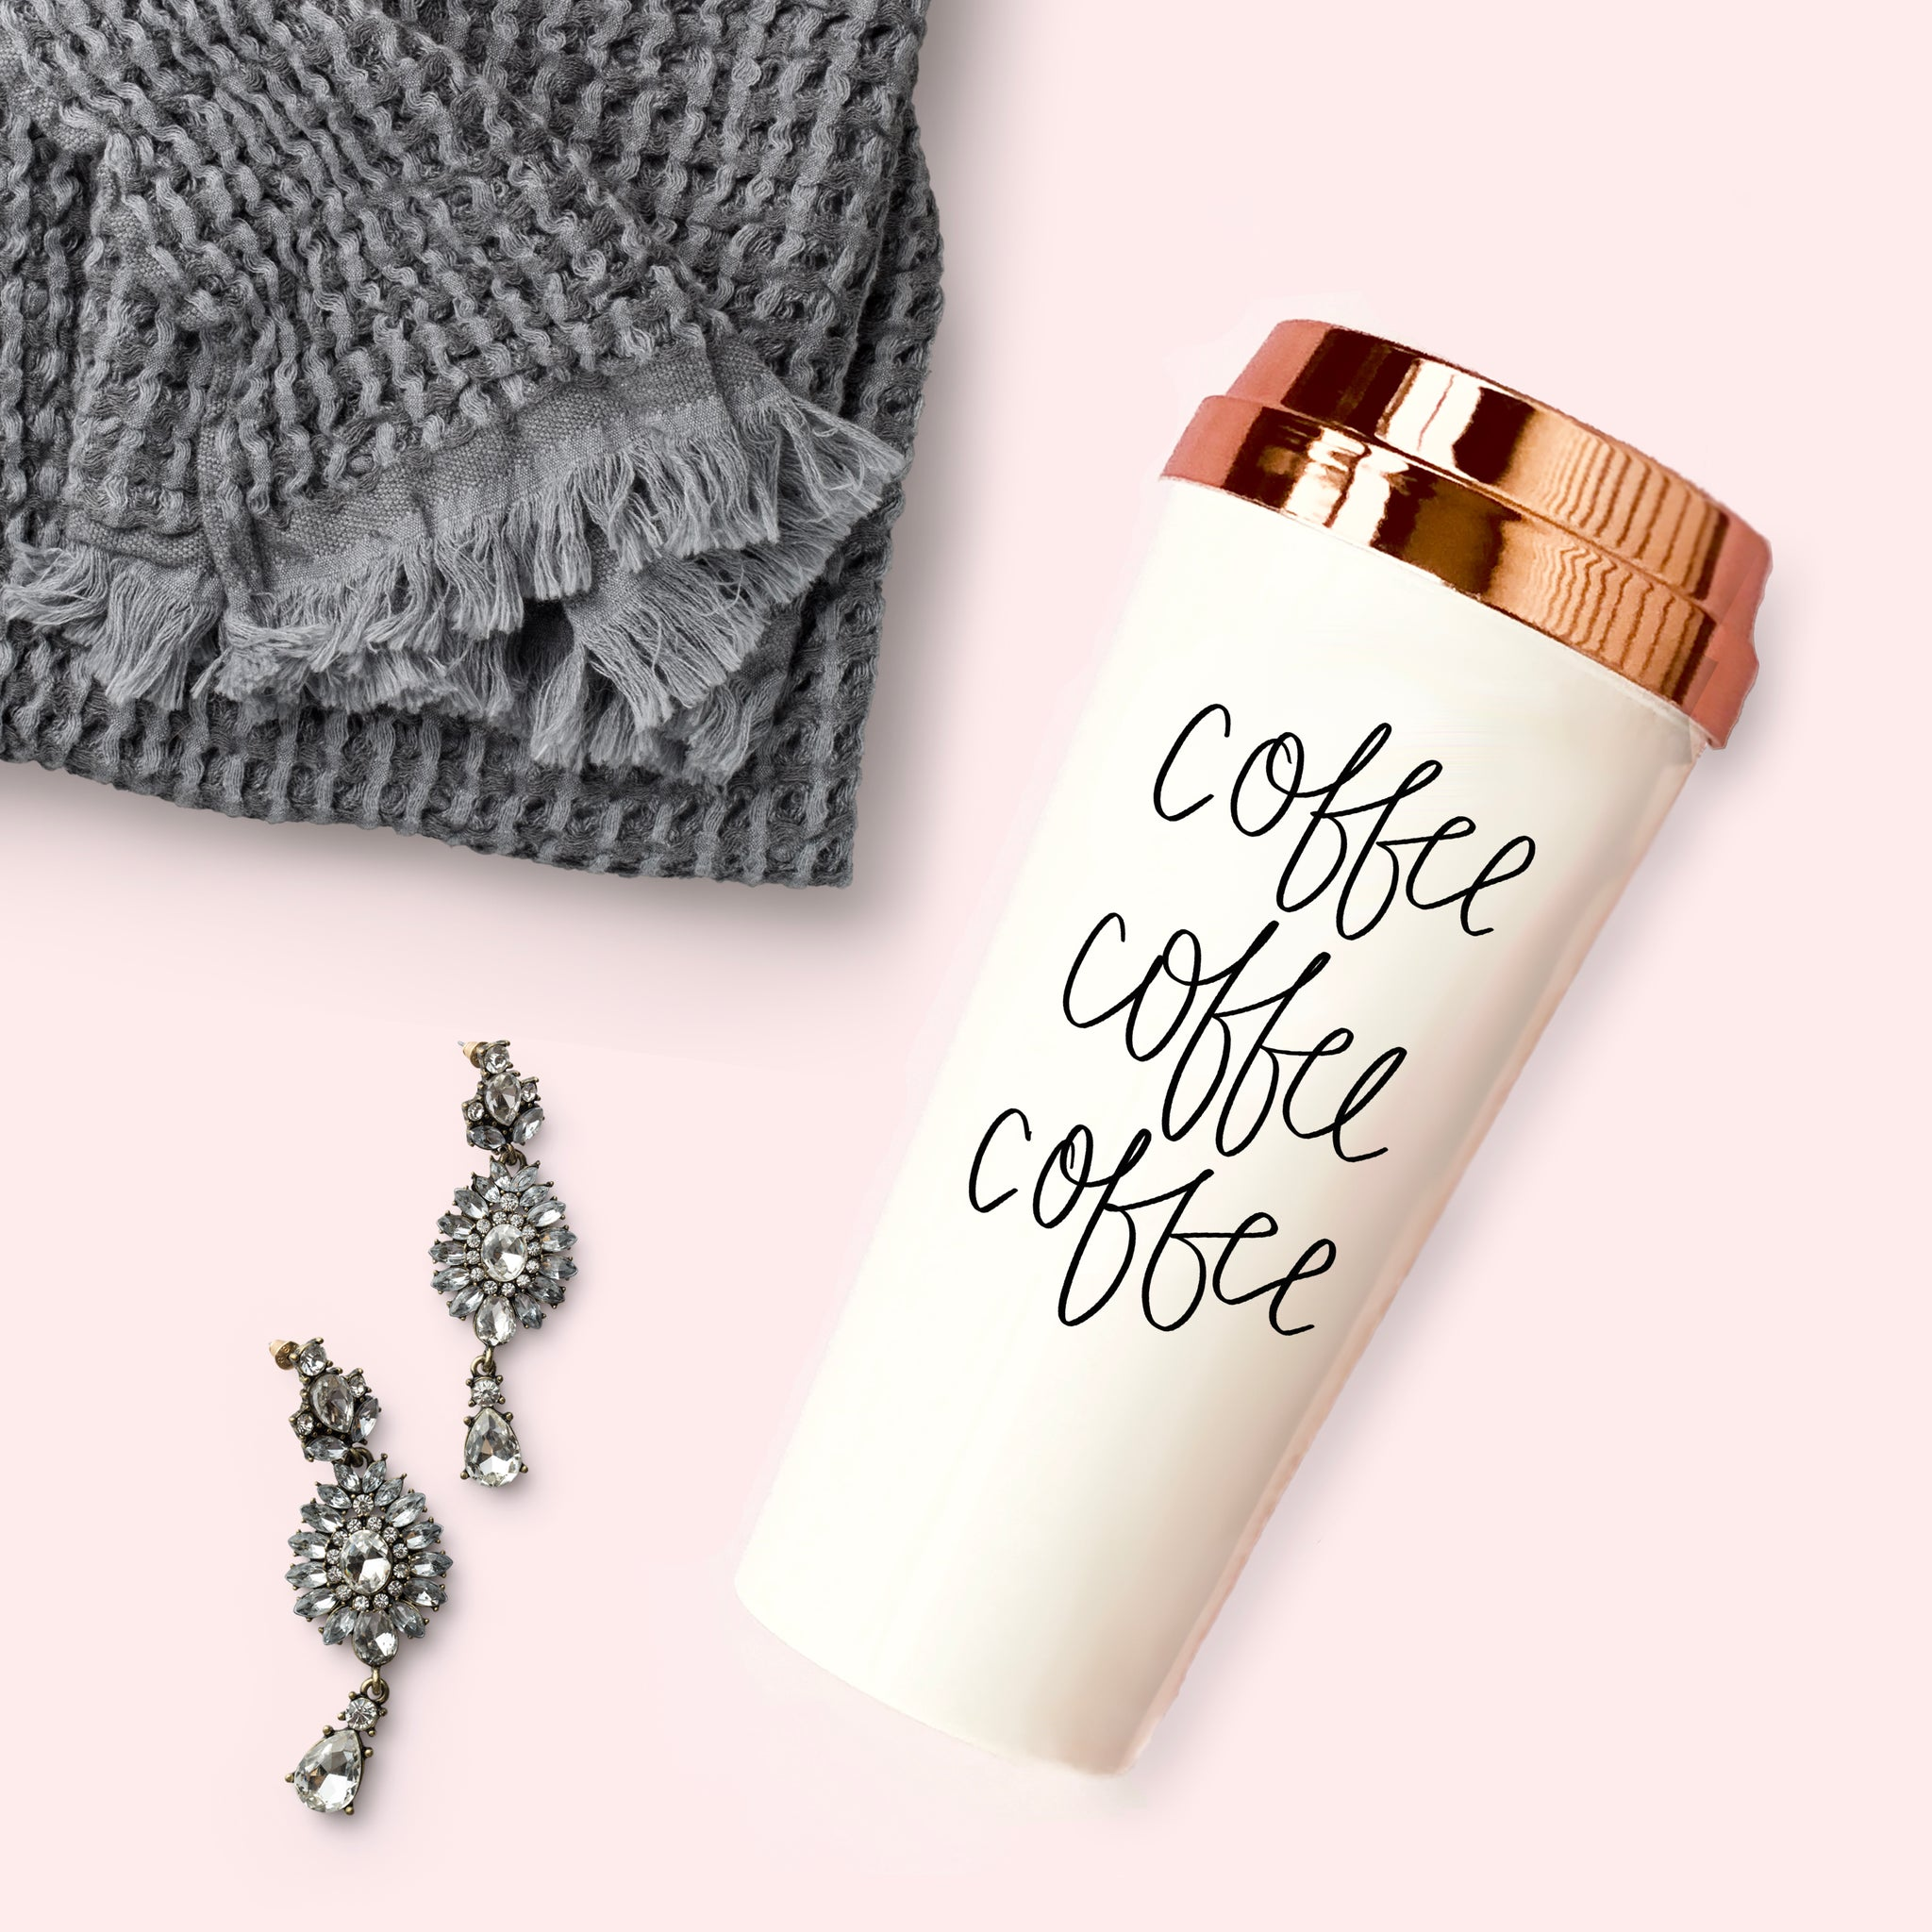 COFFEE COFFEE COFFEE TRAVEL MUG | SWEET WATER DECOR